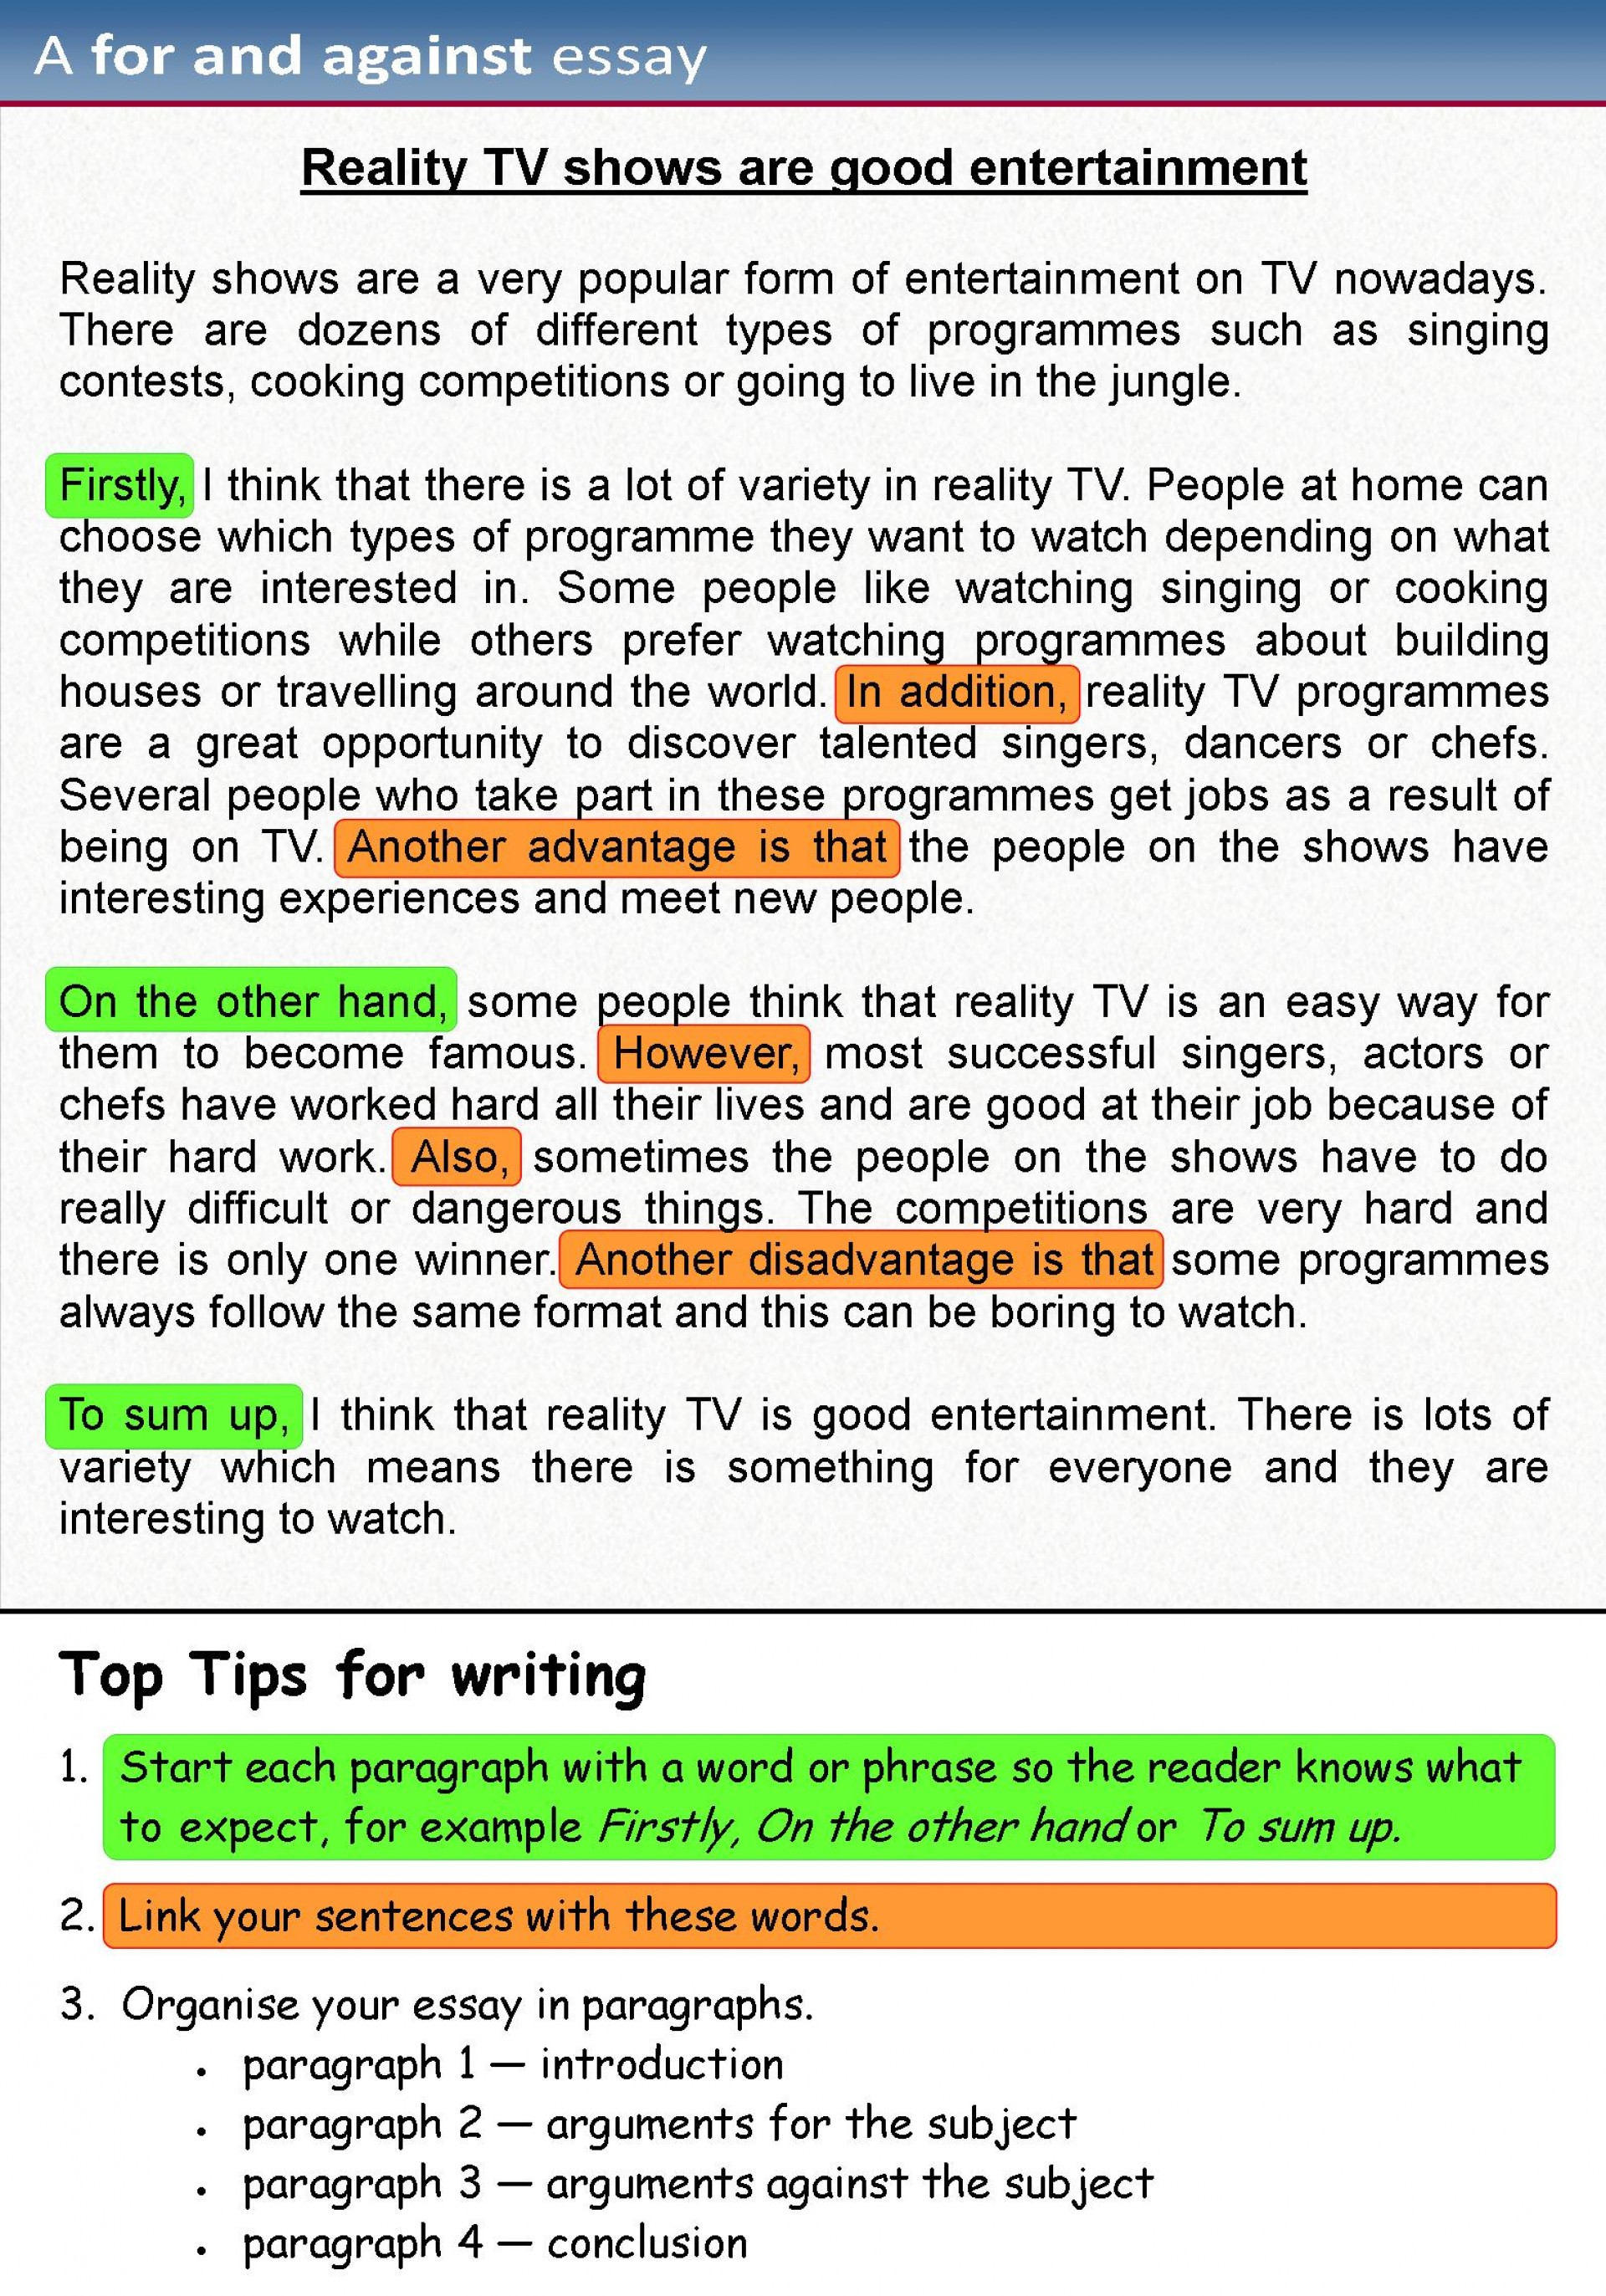 011 For Against Essay 1 Example Structure Incredible Types Pdf Organizational 1920